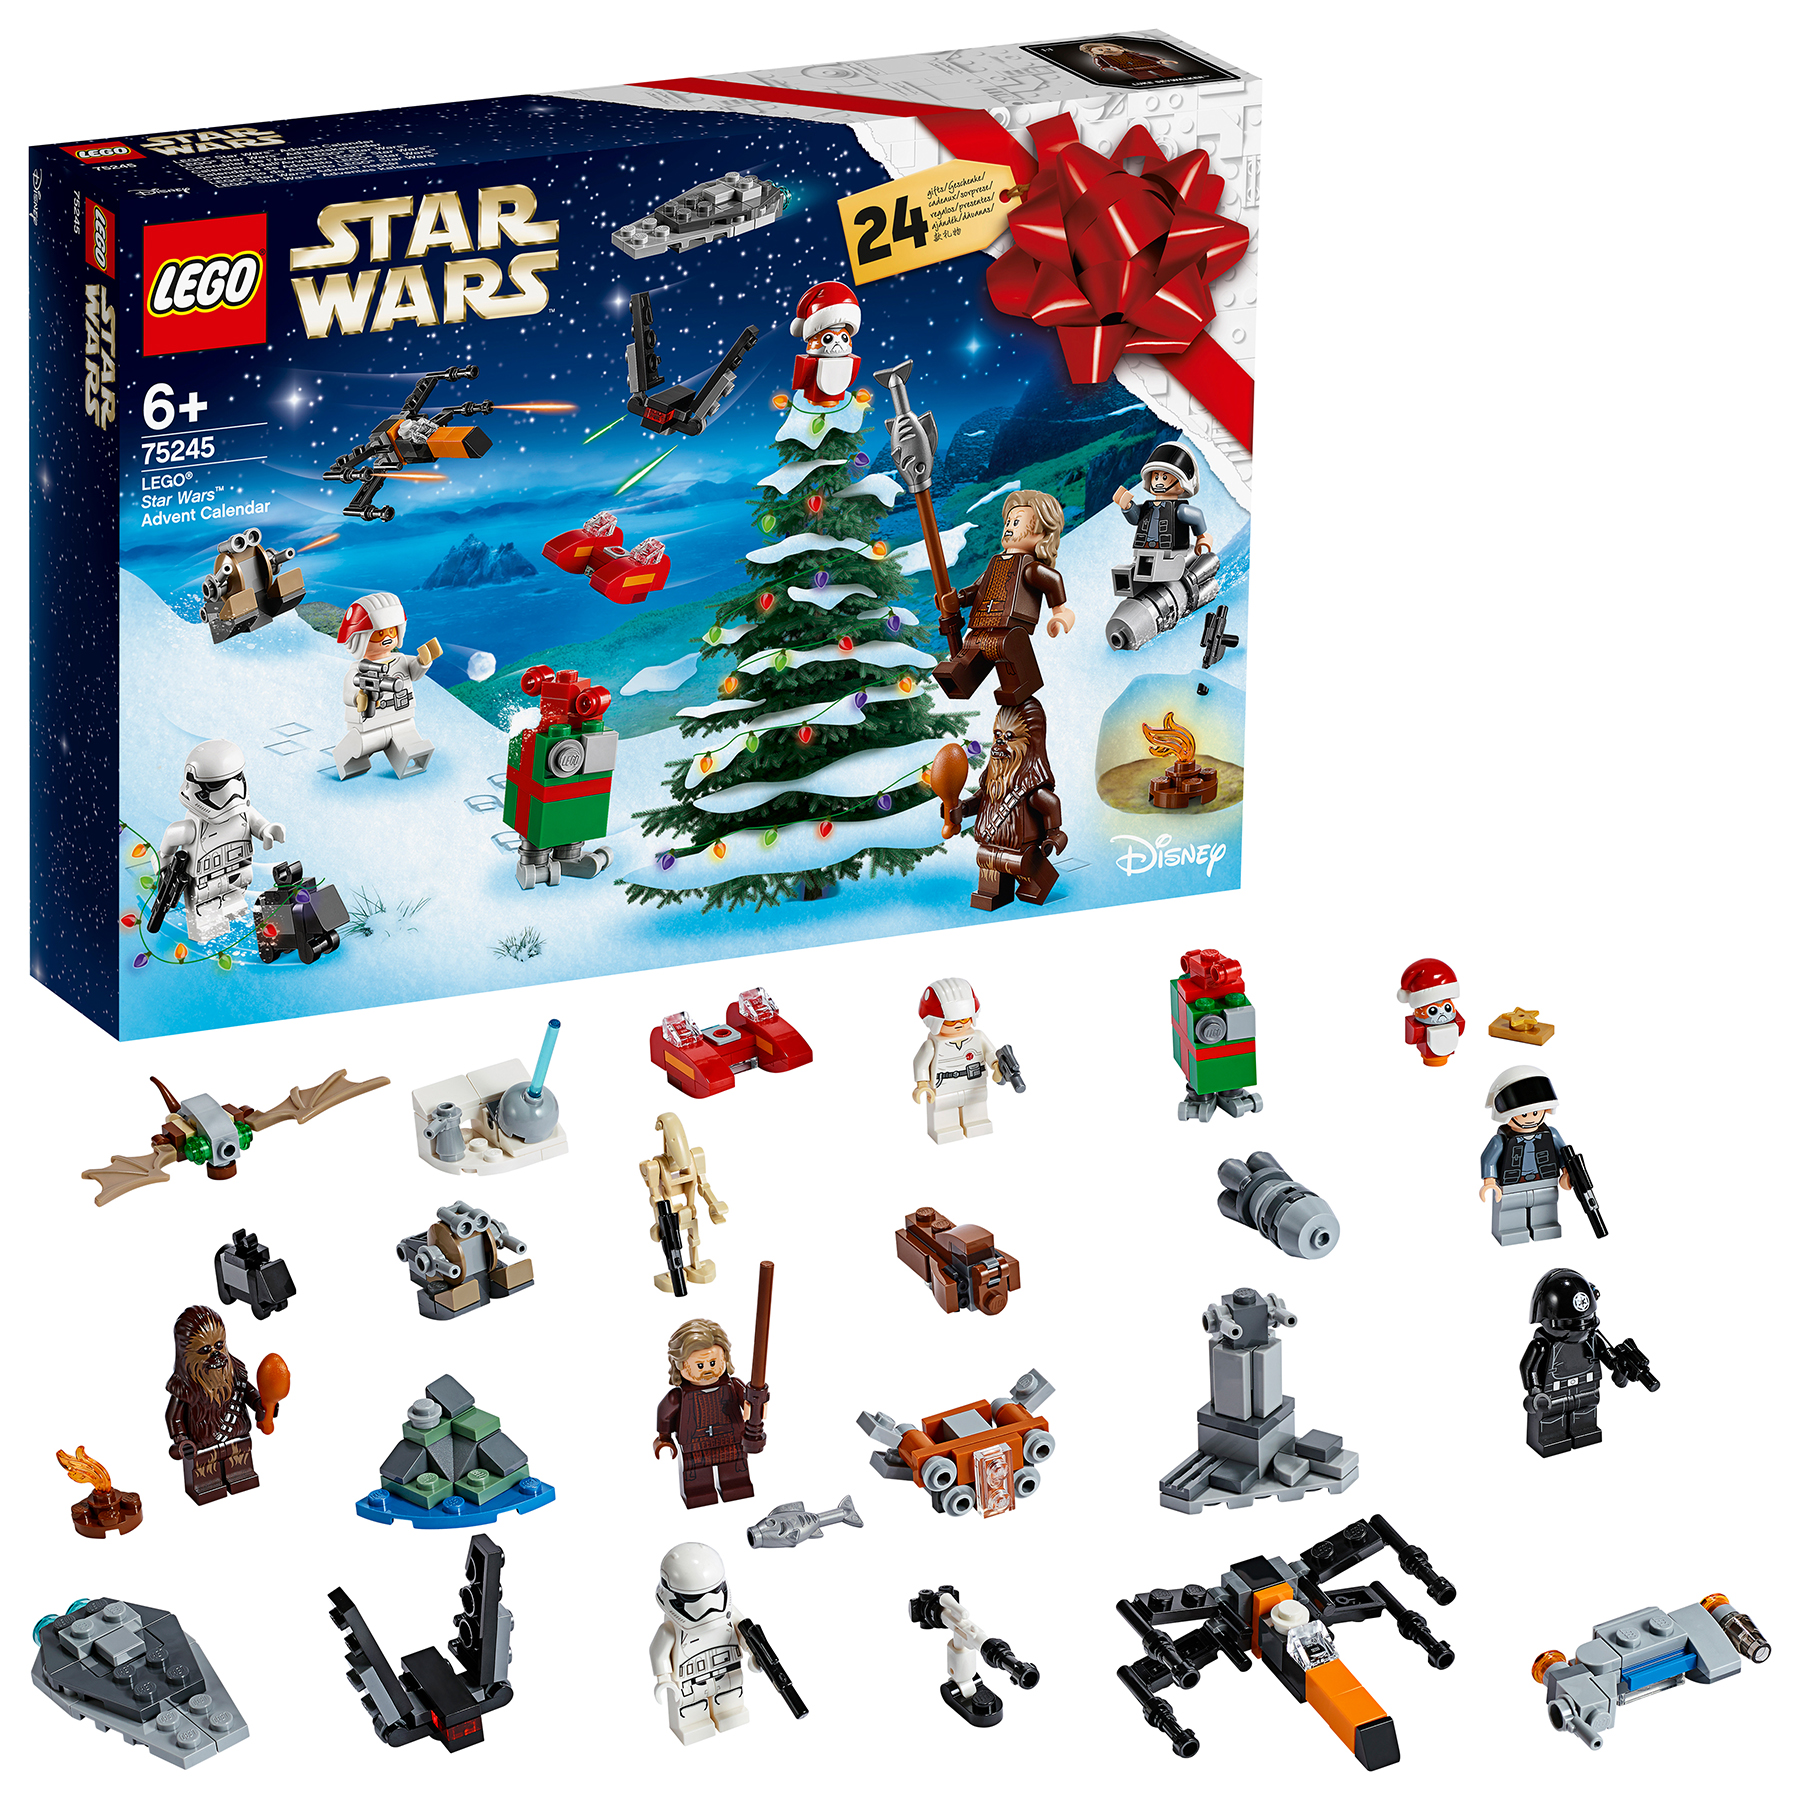 Best Advent Calendars 2019 - Star Wars Advent Calendar: LEGO Star Wars Advent Calendar